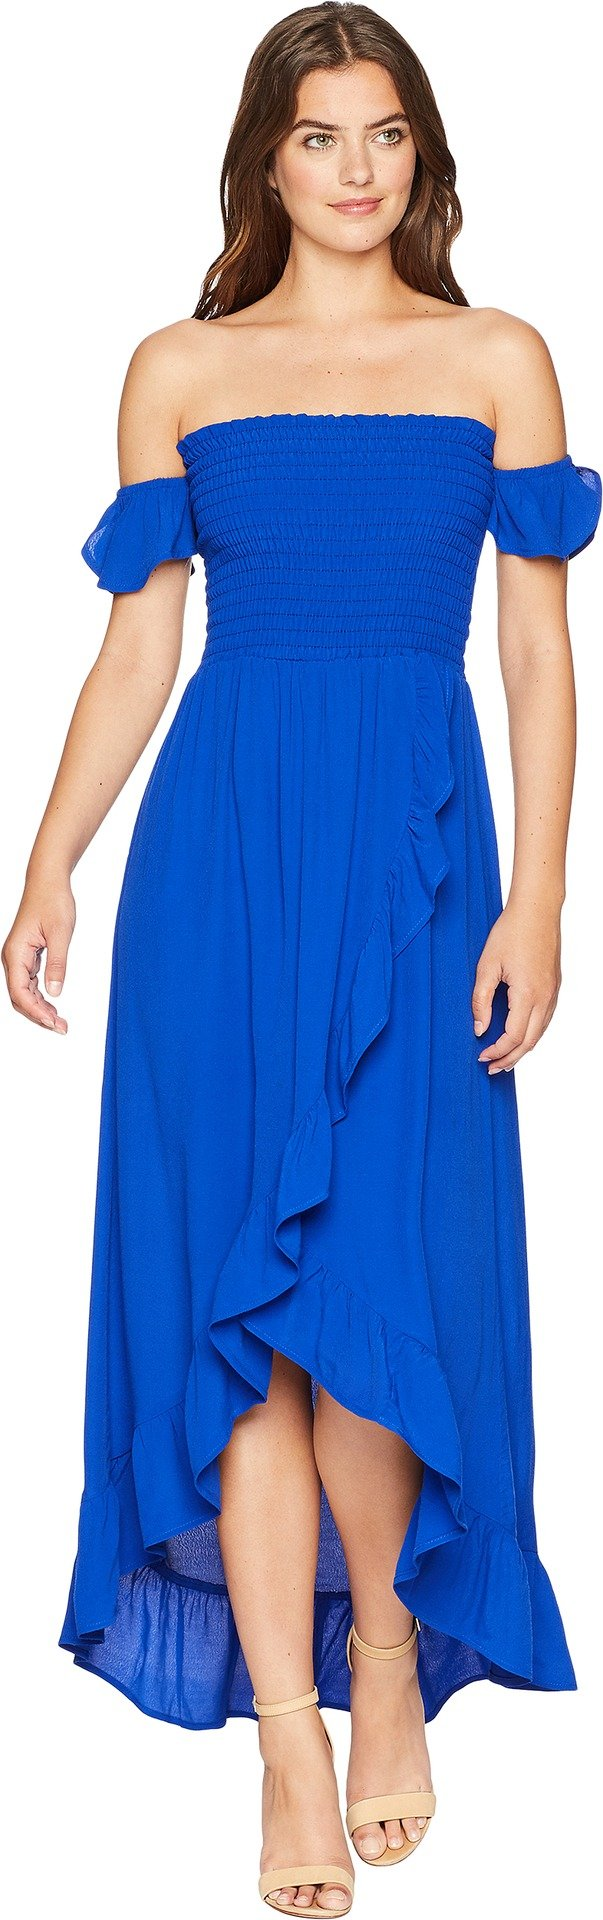 Lucy Love Women's Wild Hearts Dress Royal Blue Small